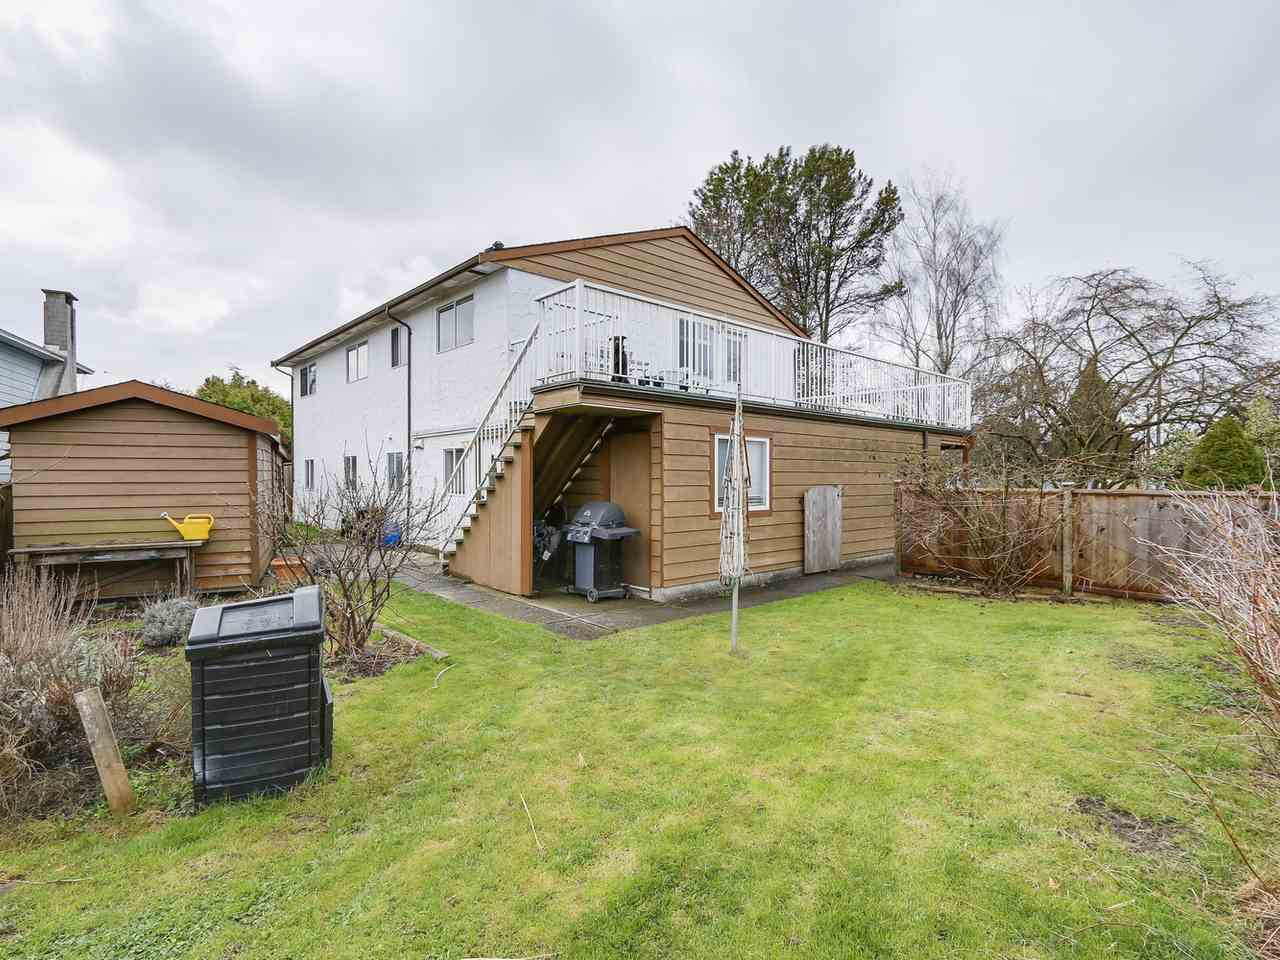 Photo 19: 4555 EDMONDS Drive in Delta: Port Guichon House for sale (Ladner)  : MLS(r) # R2150154